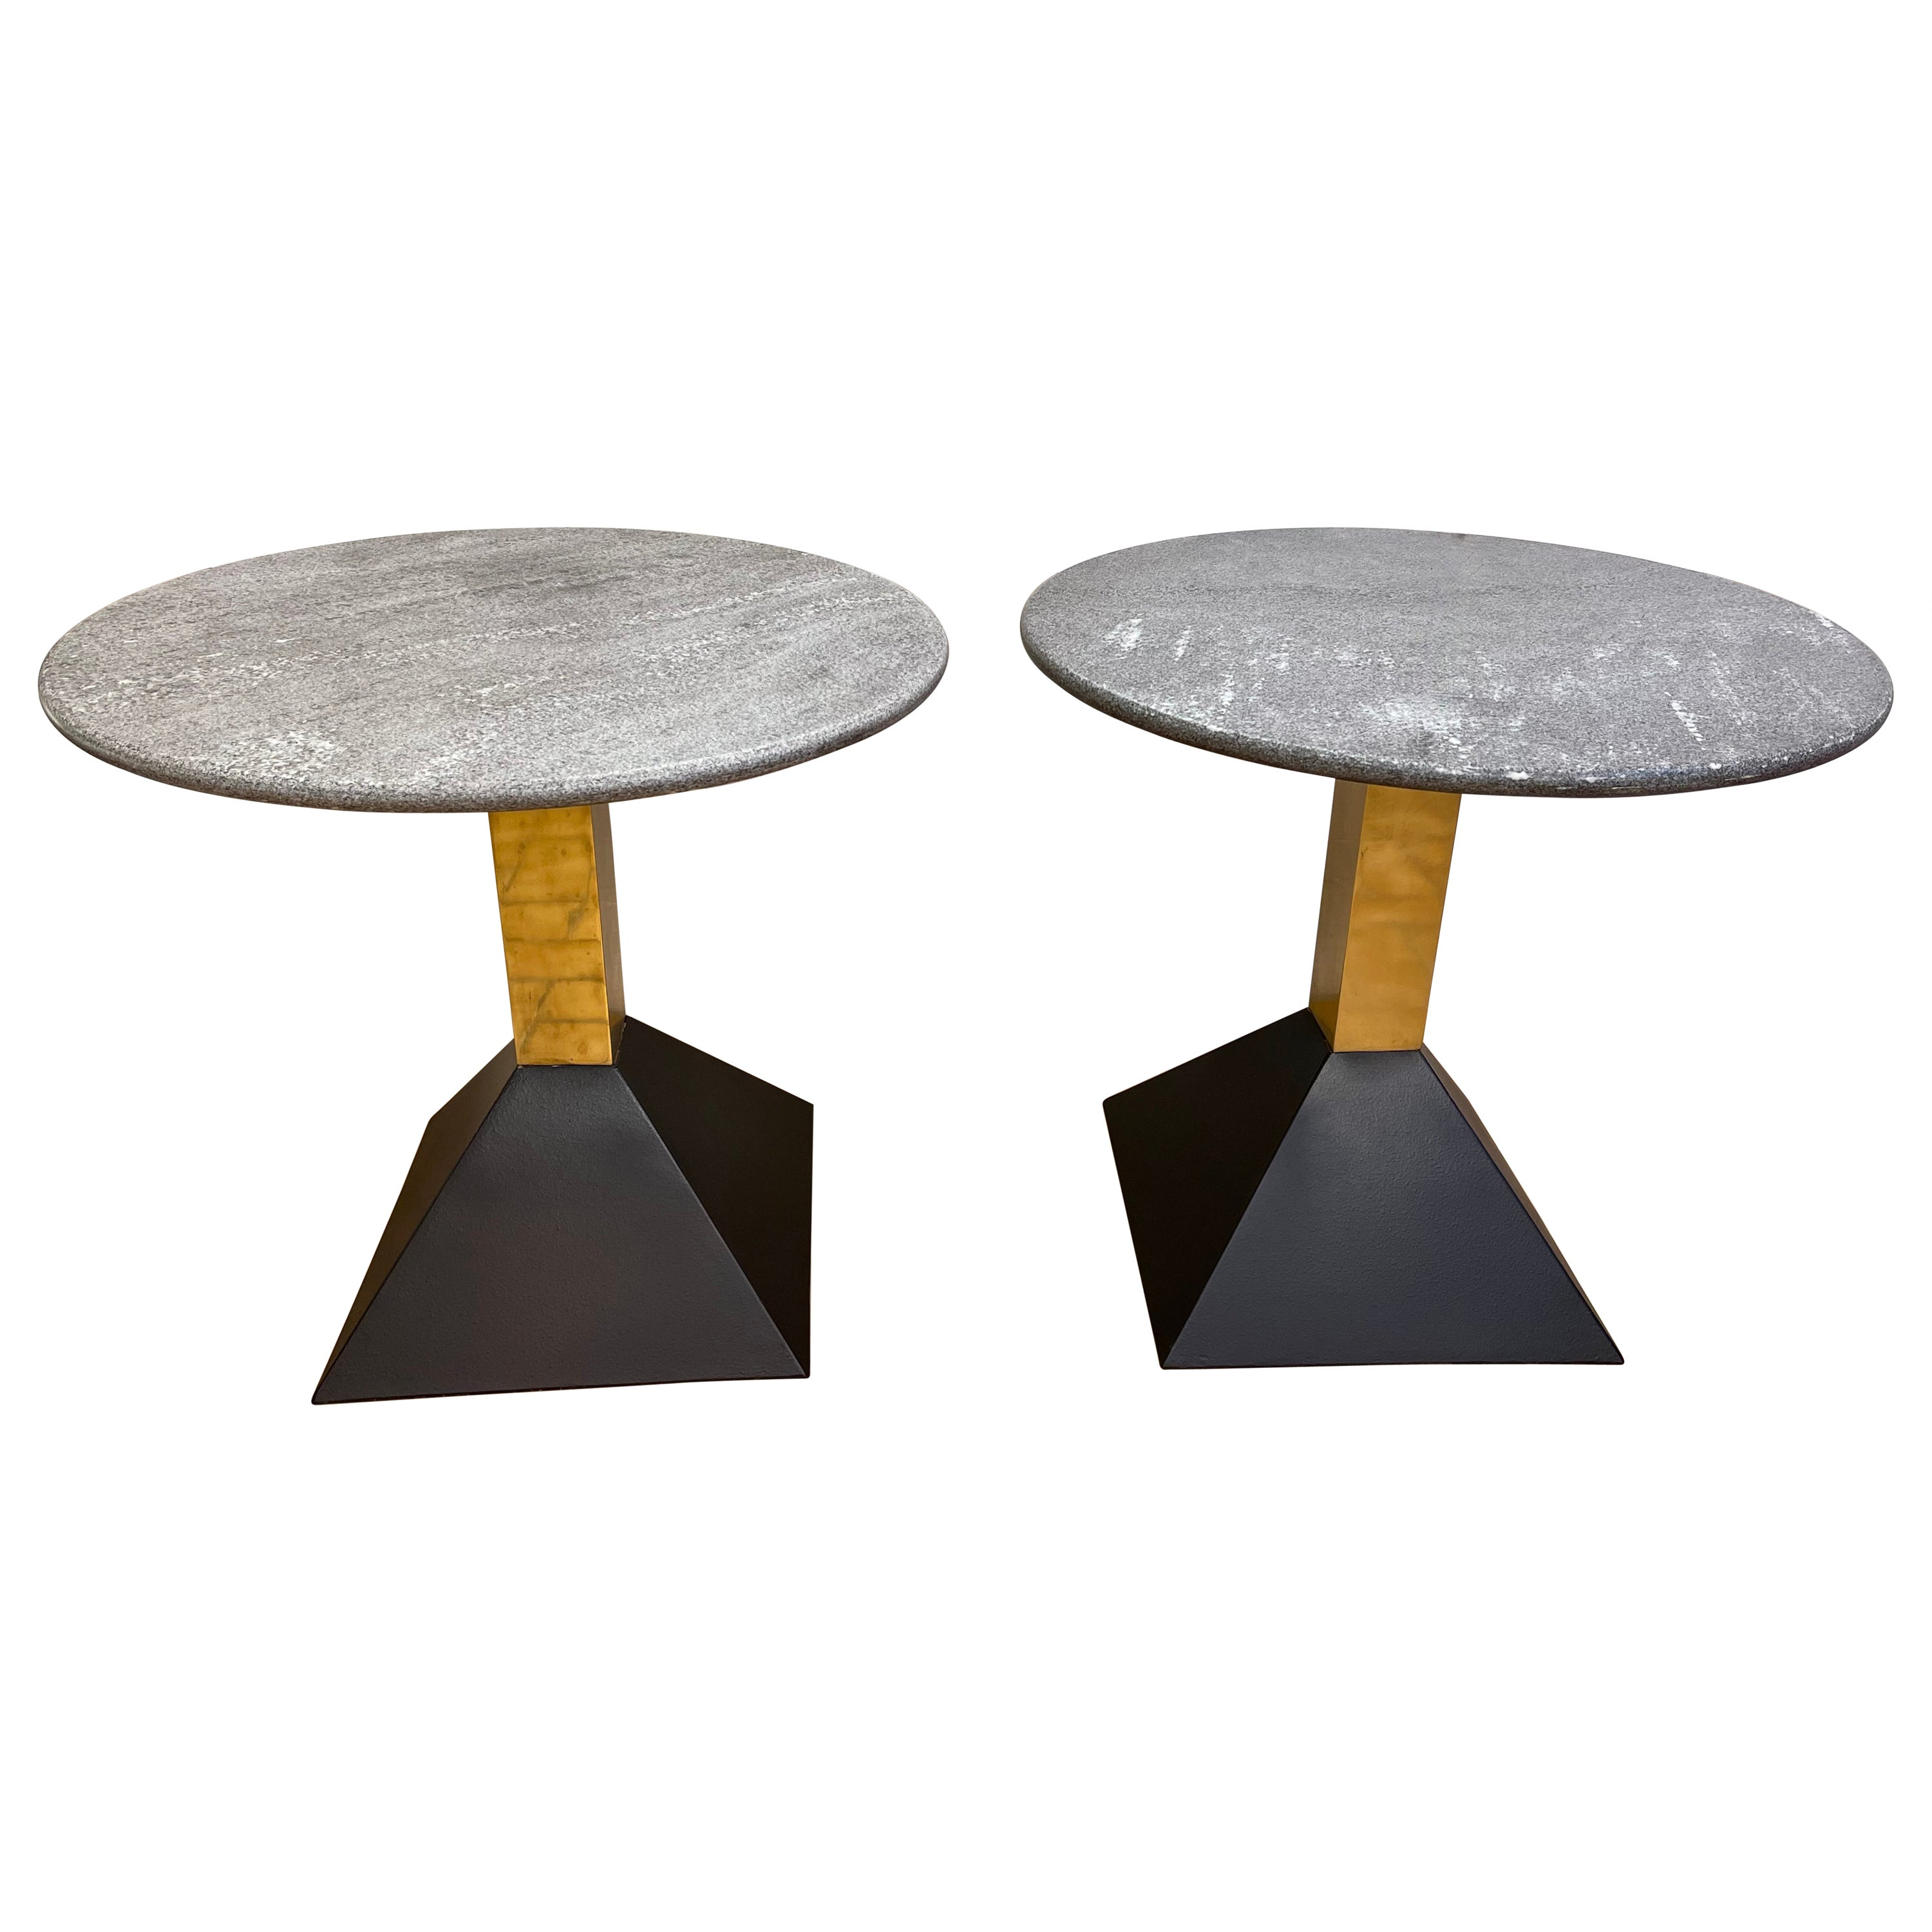 Pair of Gray Granite and Brass Side Tables, Italy, 1980s